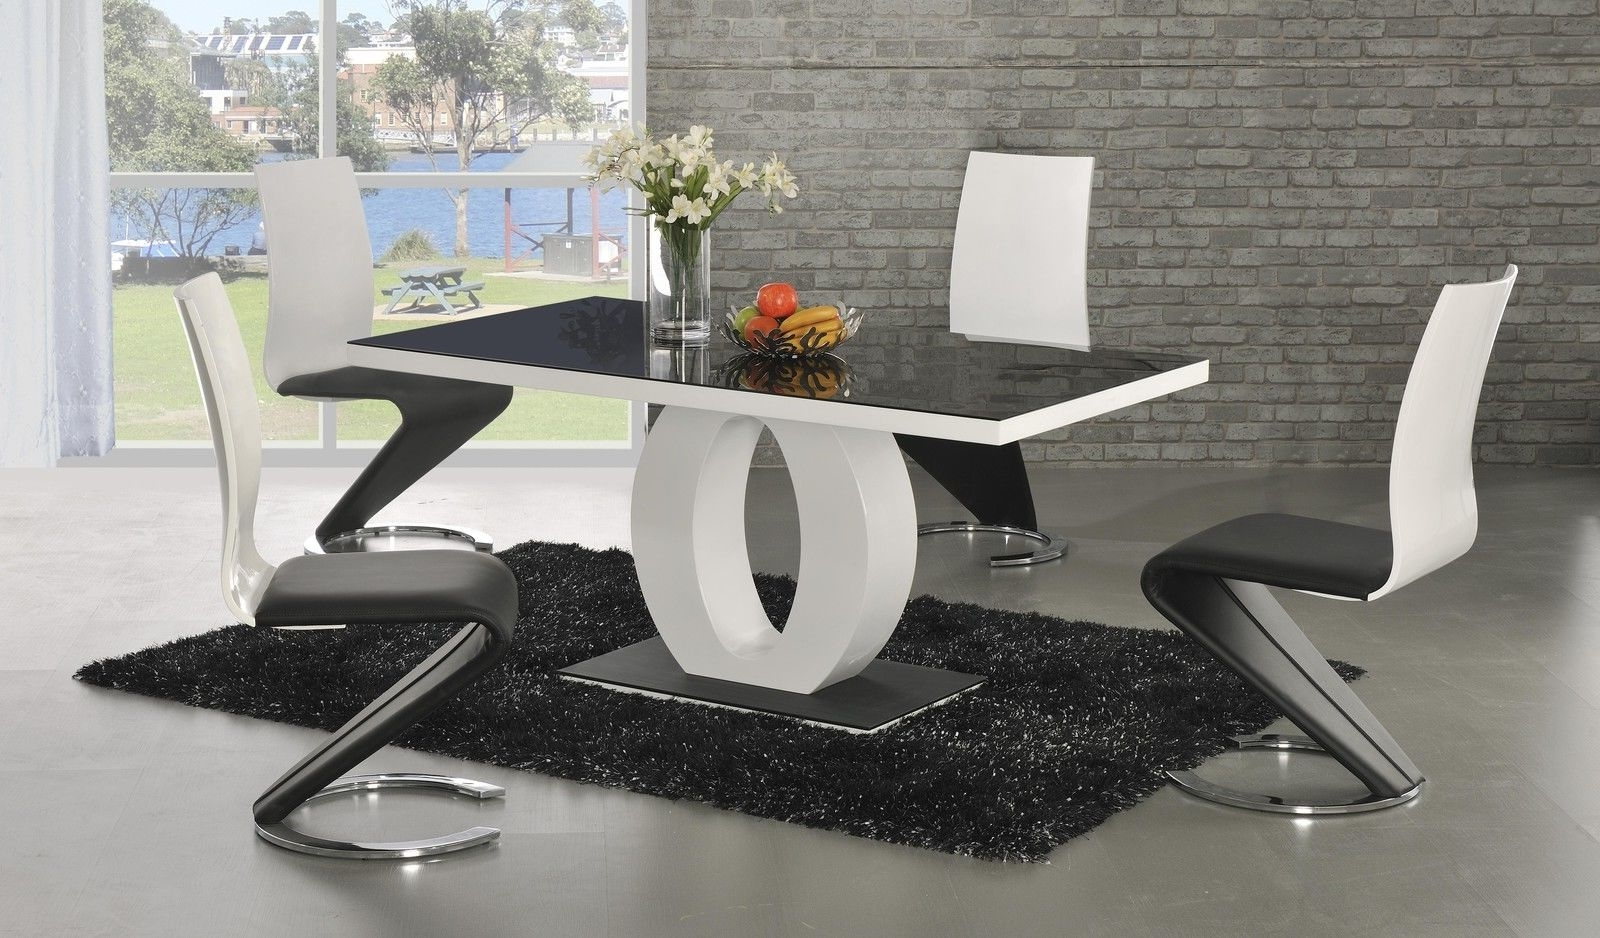 Black Gloss Dining Room Furniture Within Well Known Black And White Dining Table Set – Castrophotos (Gallery 16 of 25)